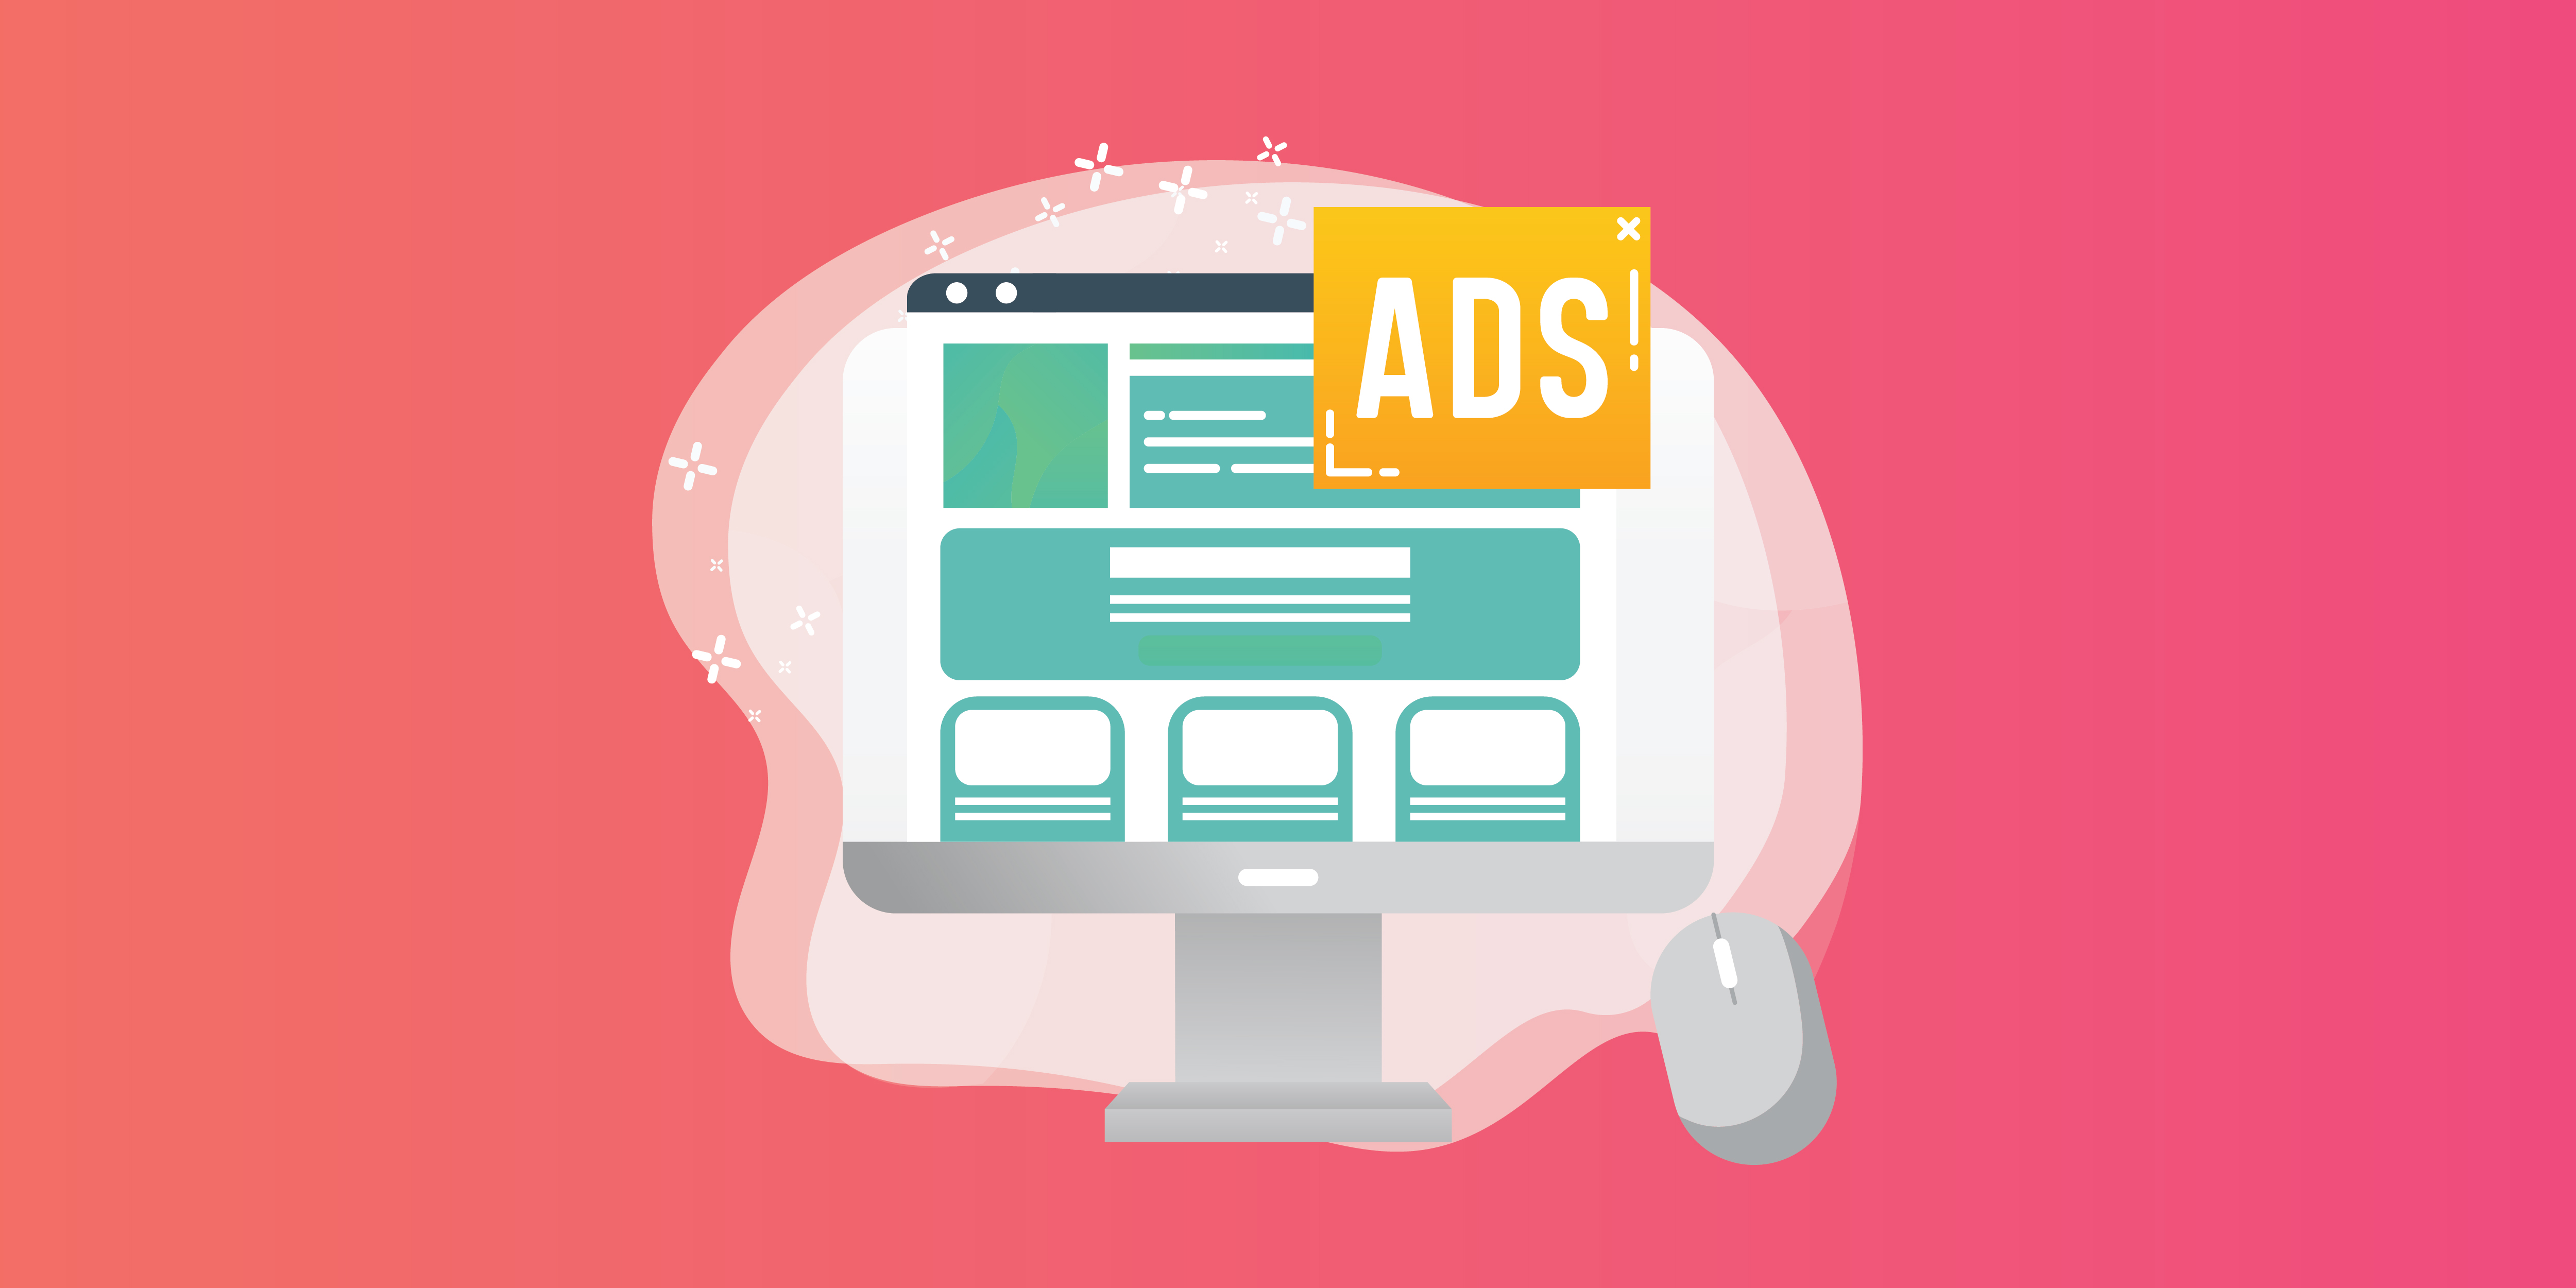 Illustration of desktop computer and mouse with a webpage on the computerscreen and a word bubble that says Ads